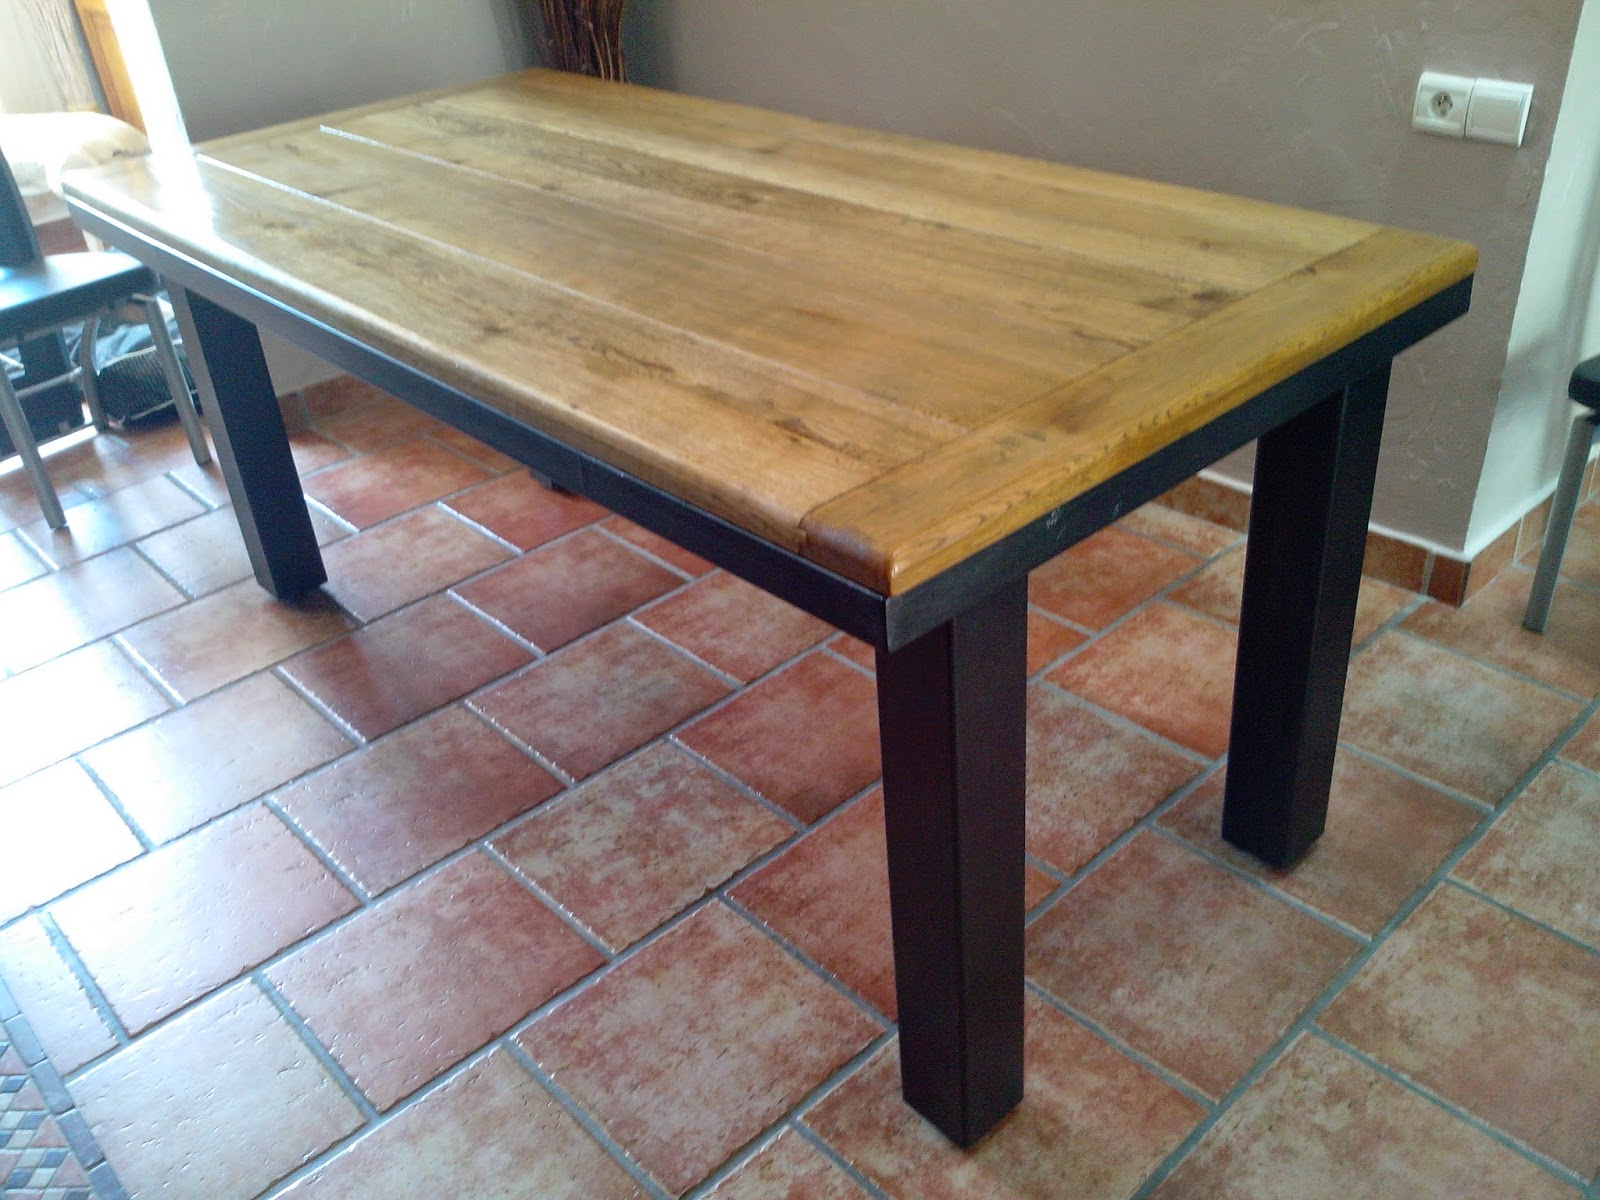 Phil de fer tables industrielle for Table industrielle